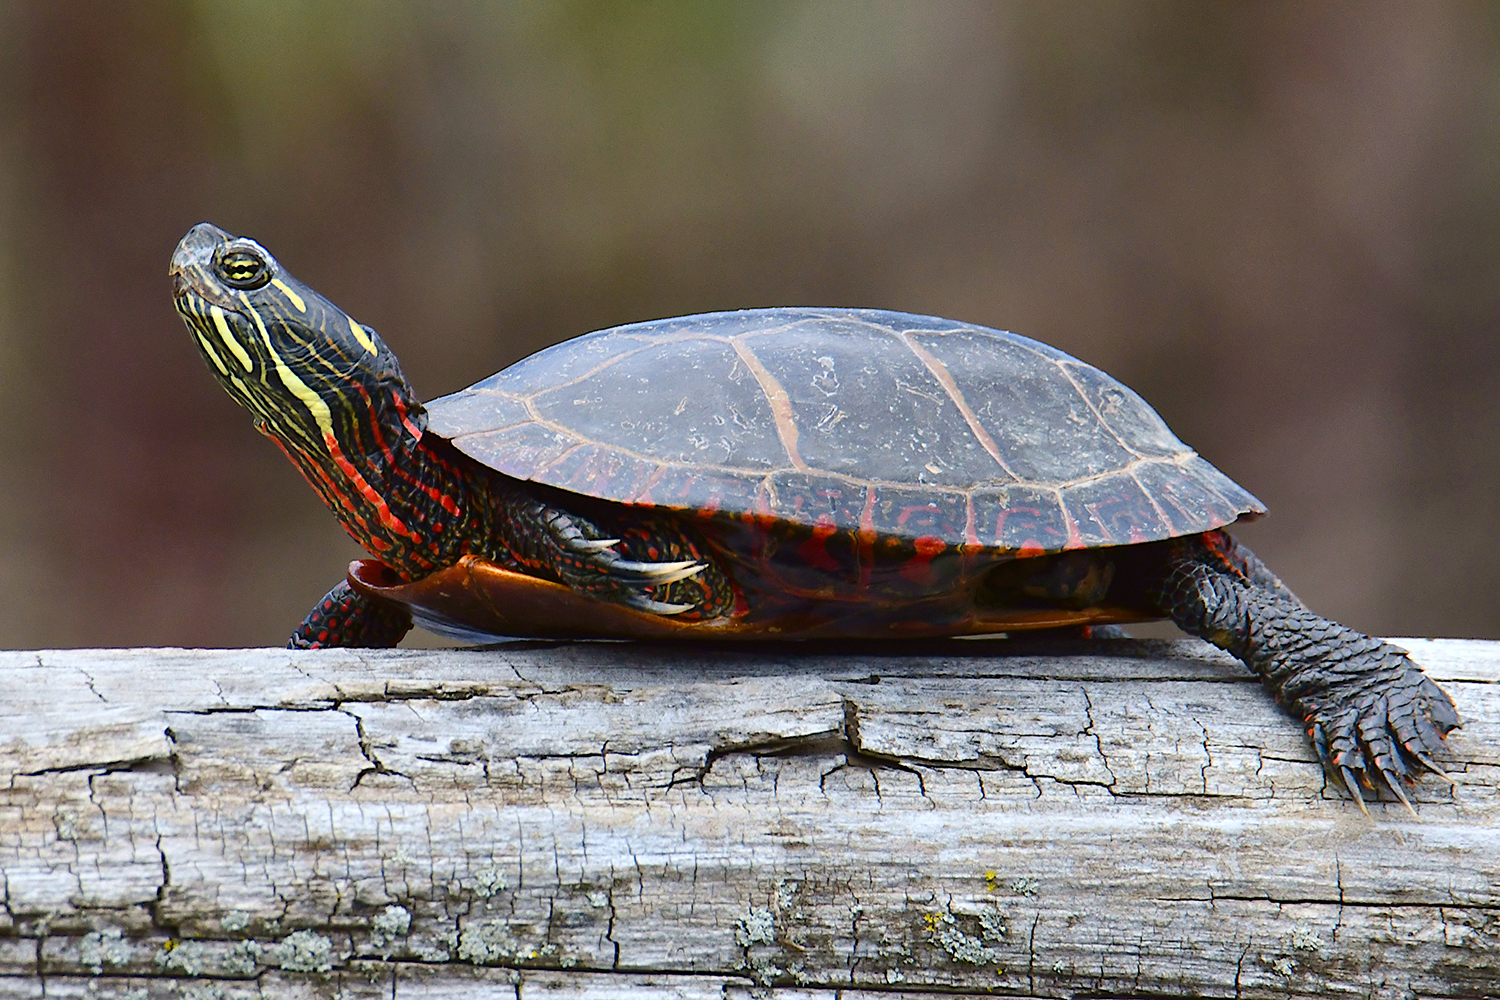 Many painted turtles were sunning on logs along the shore.  Michael Kalin